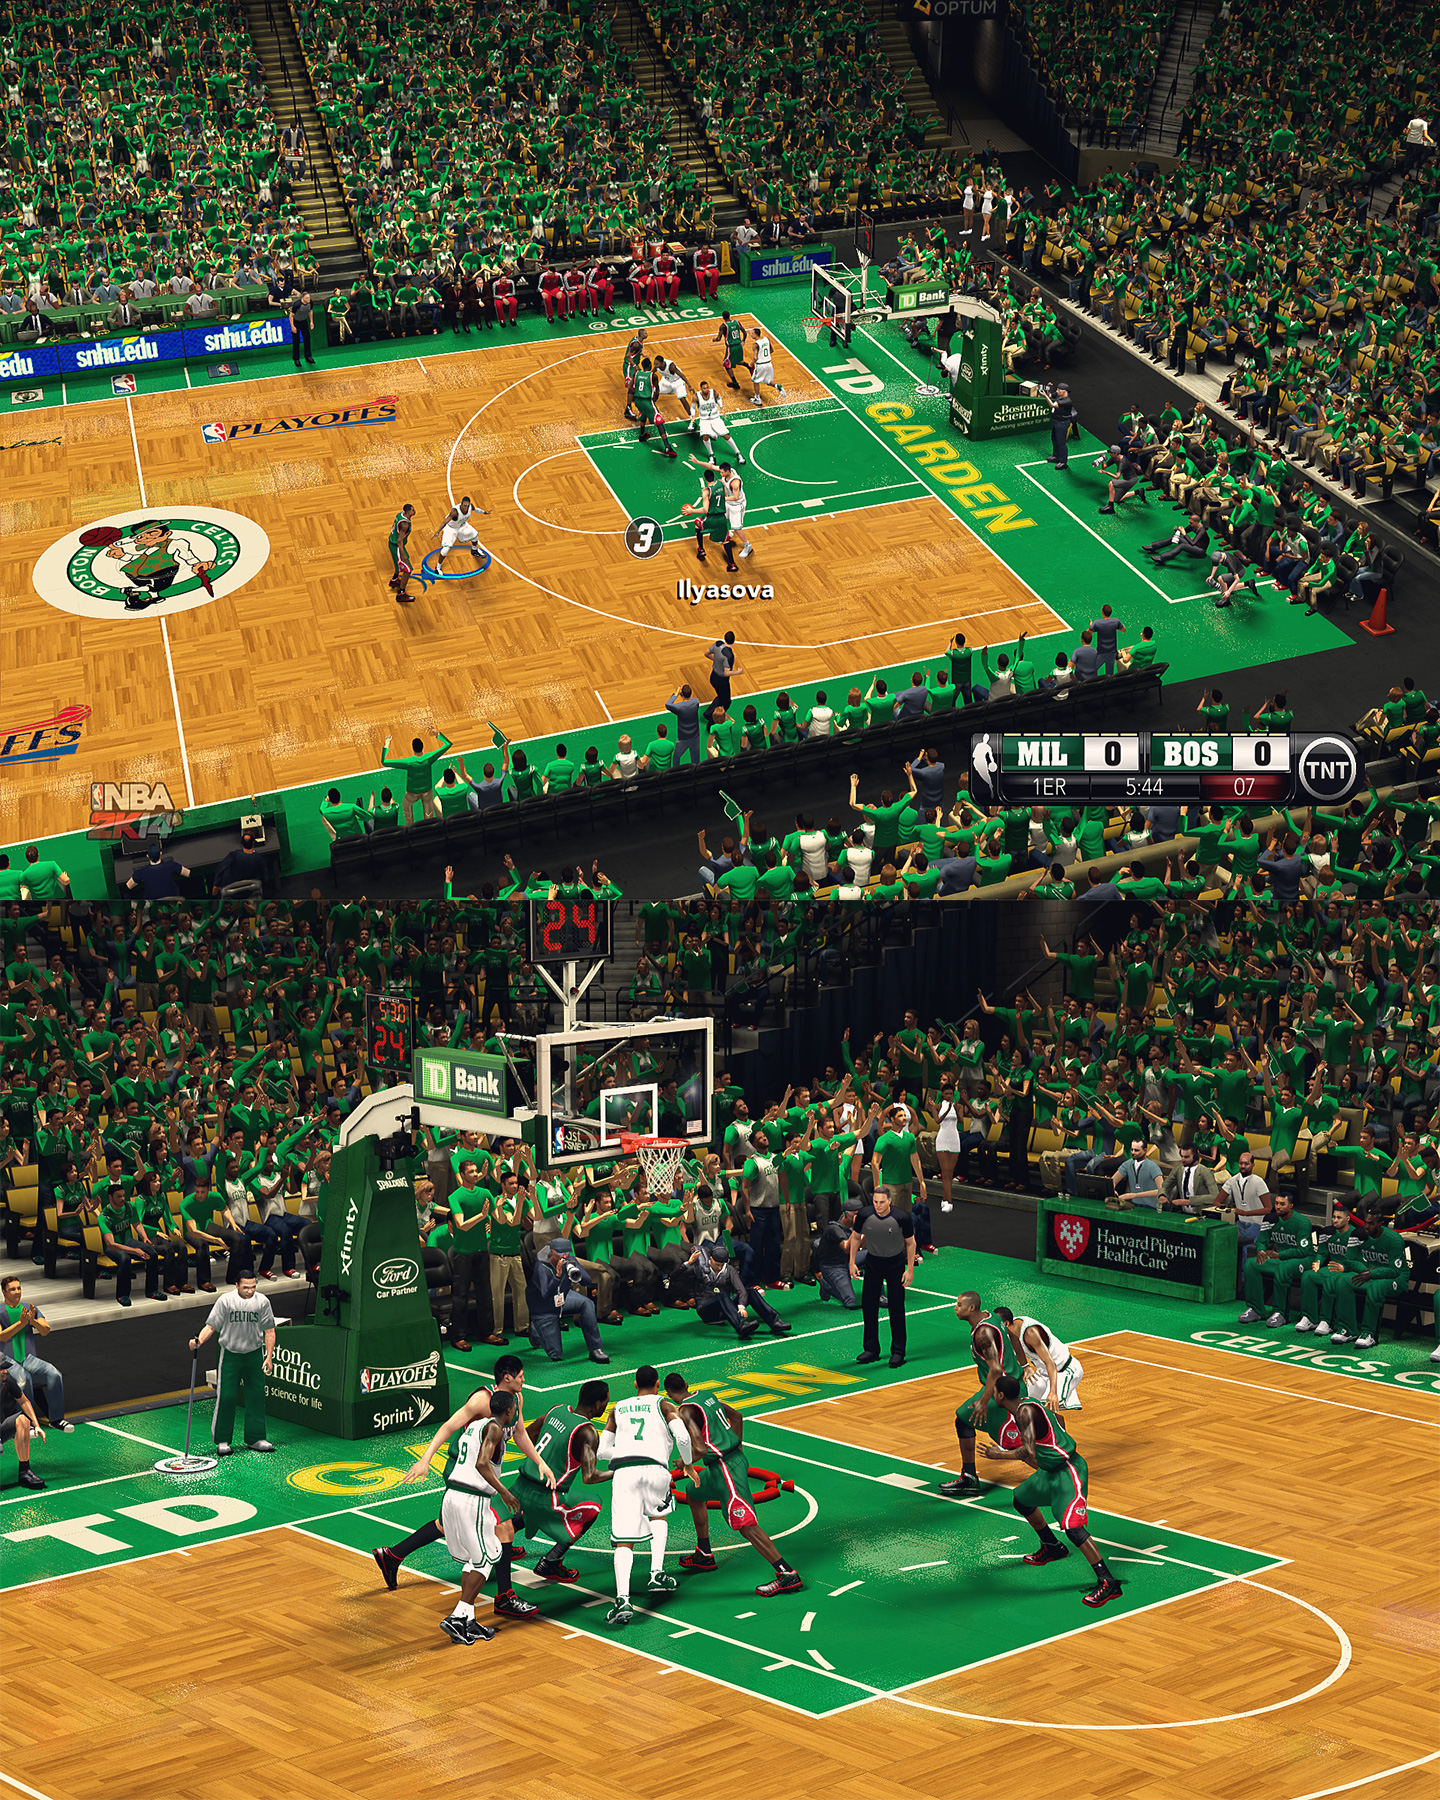 Boston Celtics TD Garden - HD Arena